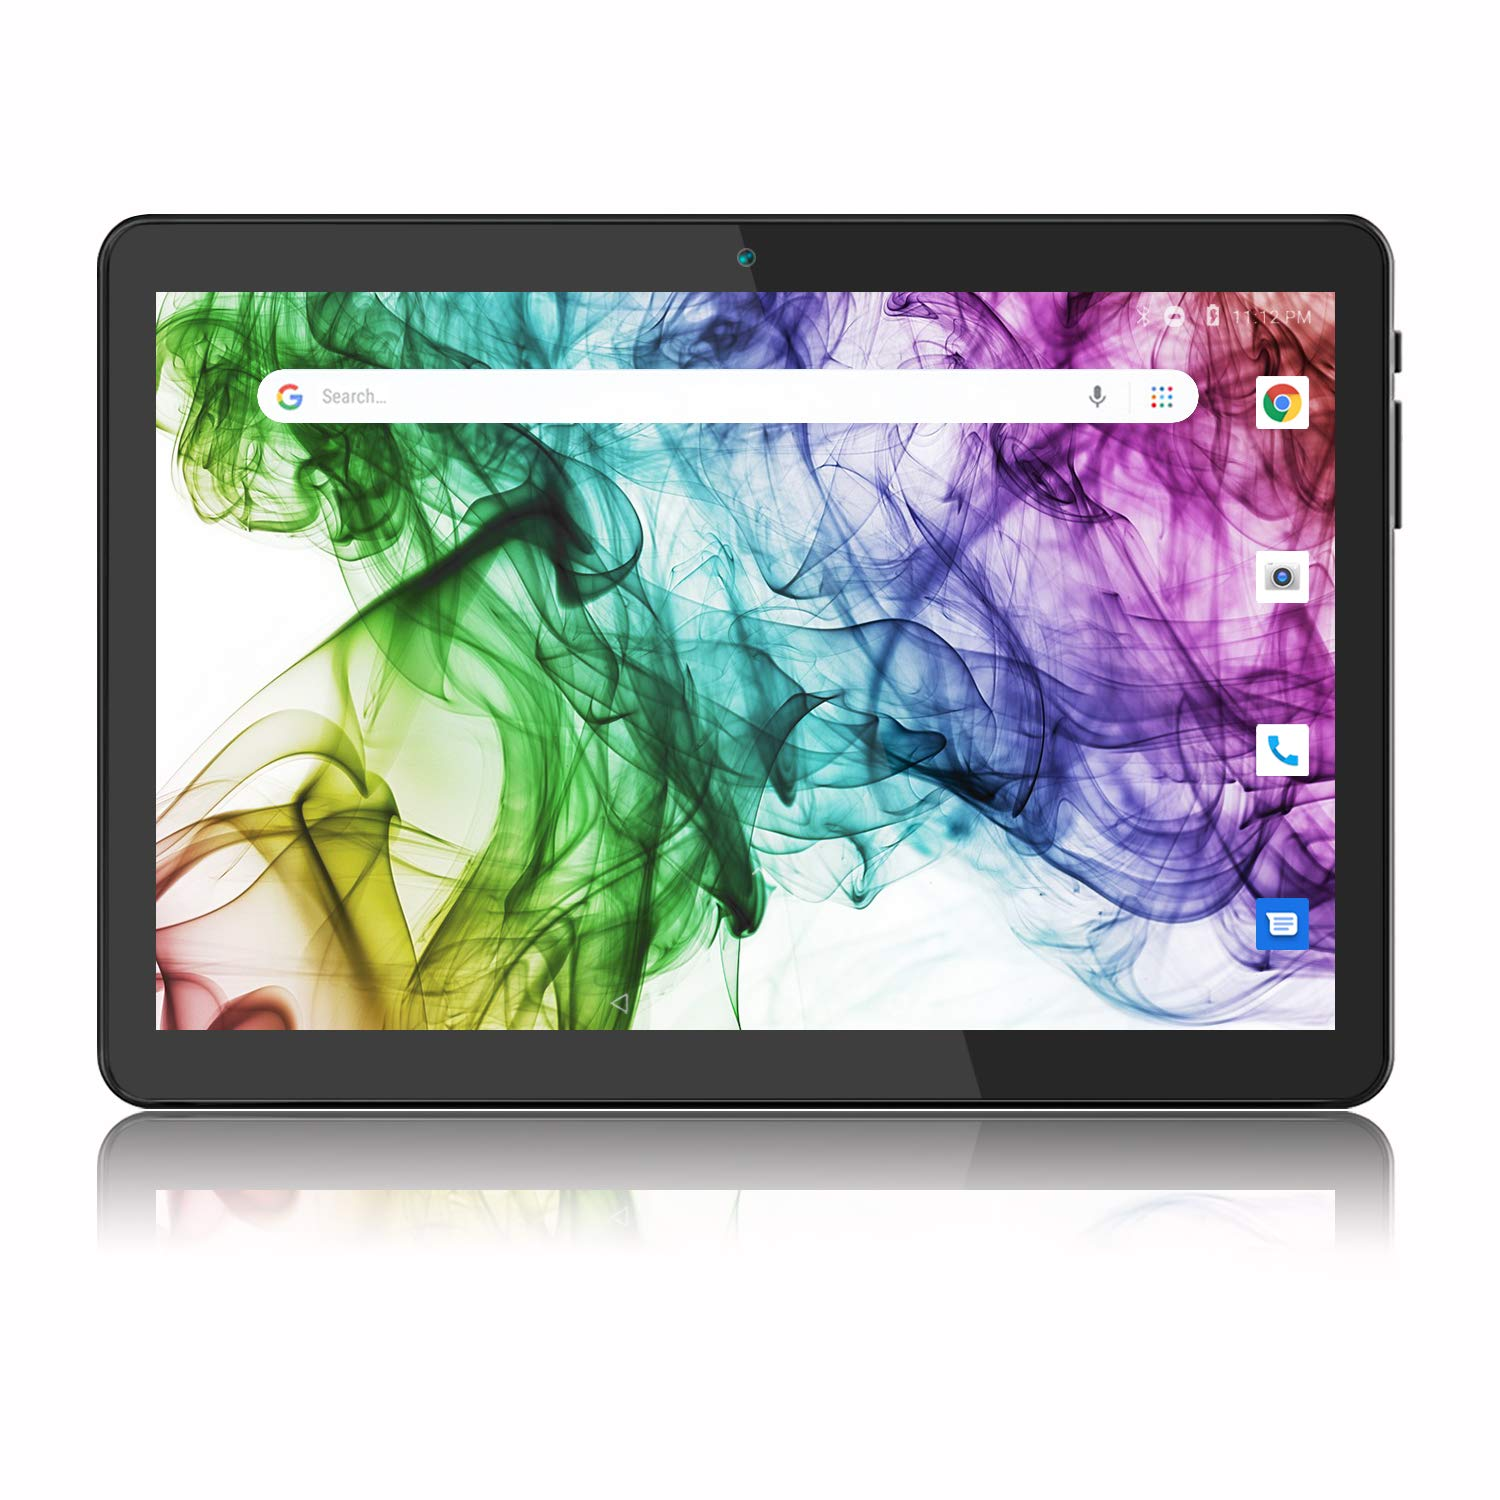 2019 Winsing 10 Inch Android Tablet Best Reviews Tablet